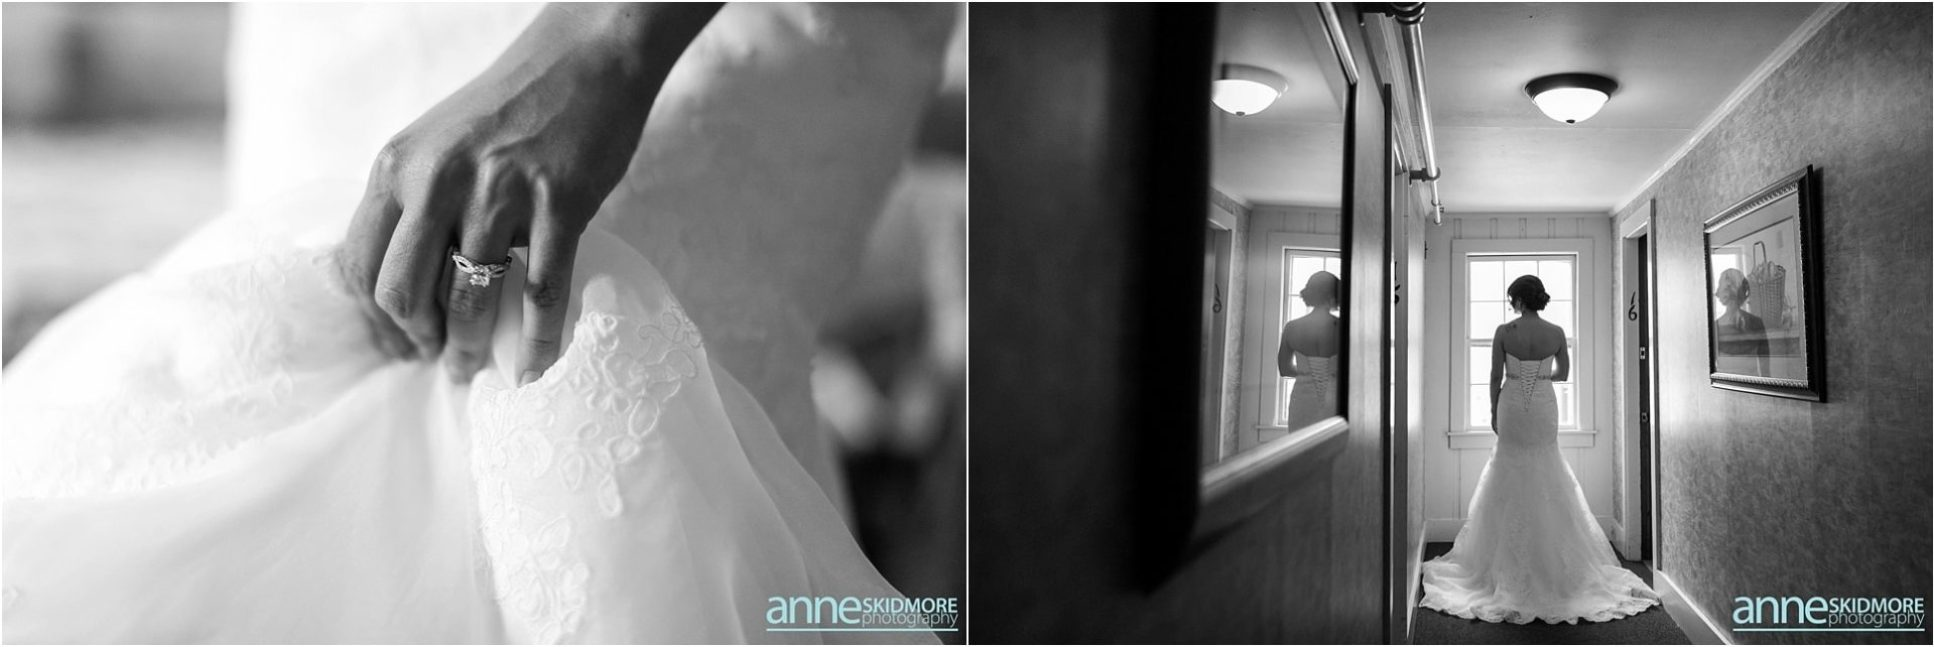 Whitneys_Inn_Wedding_0016